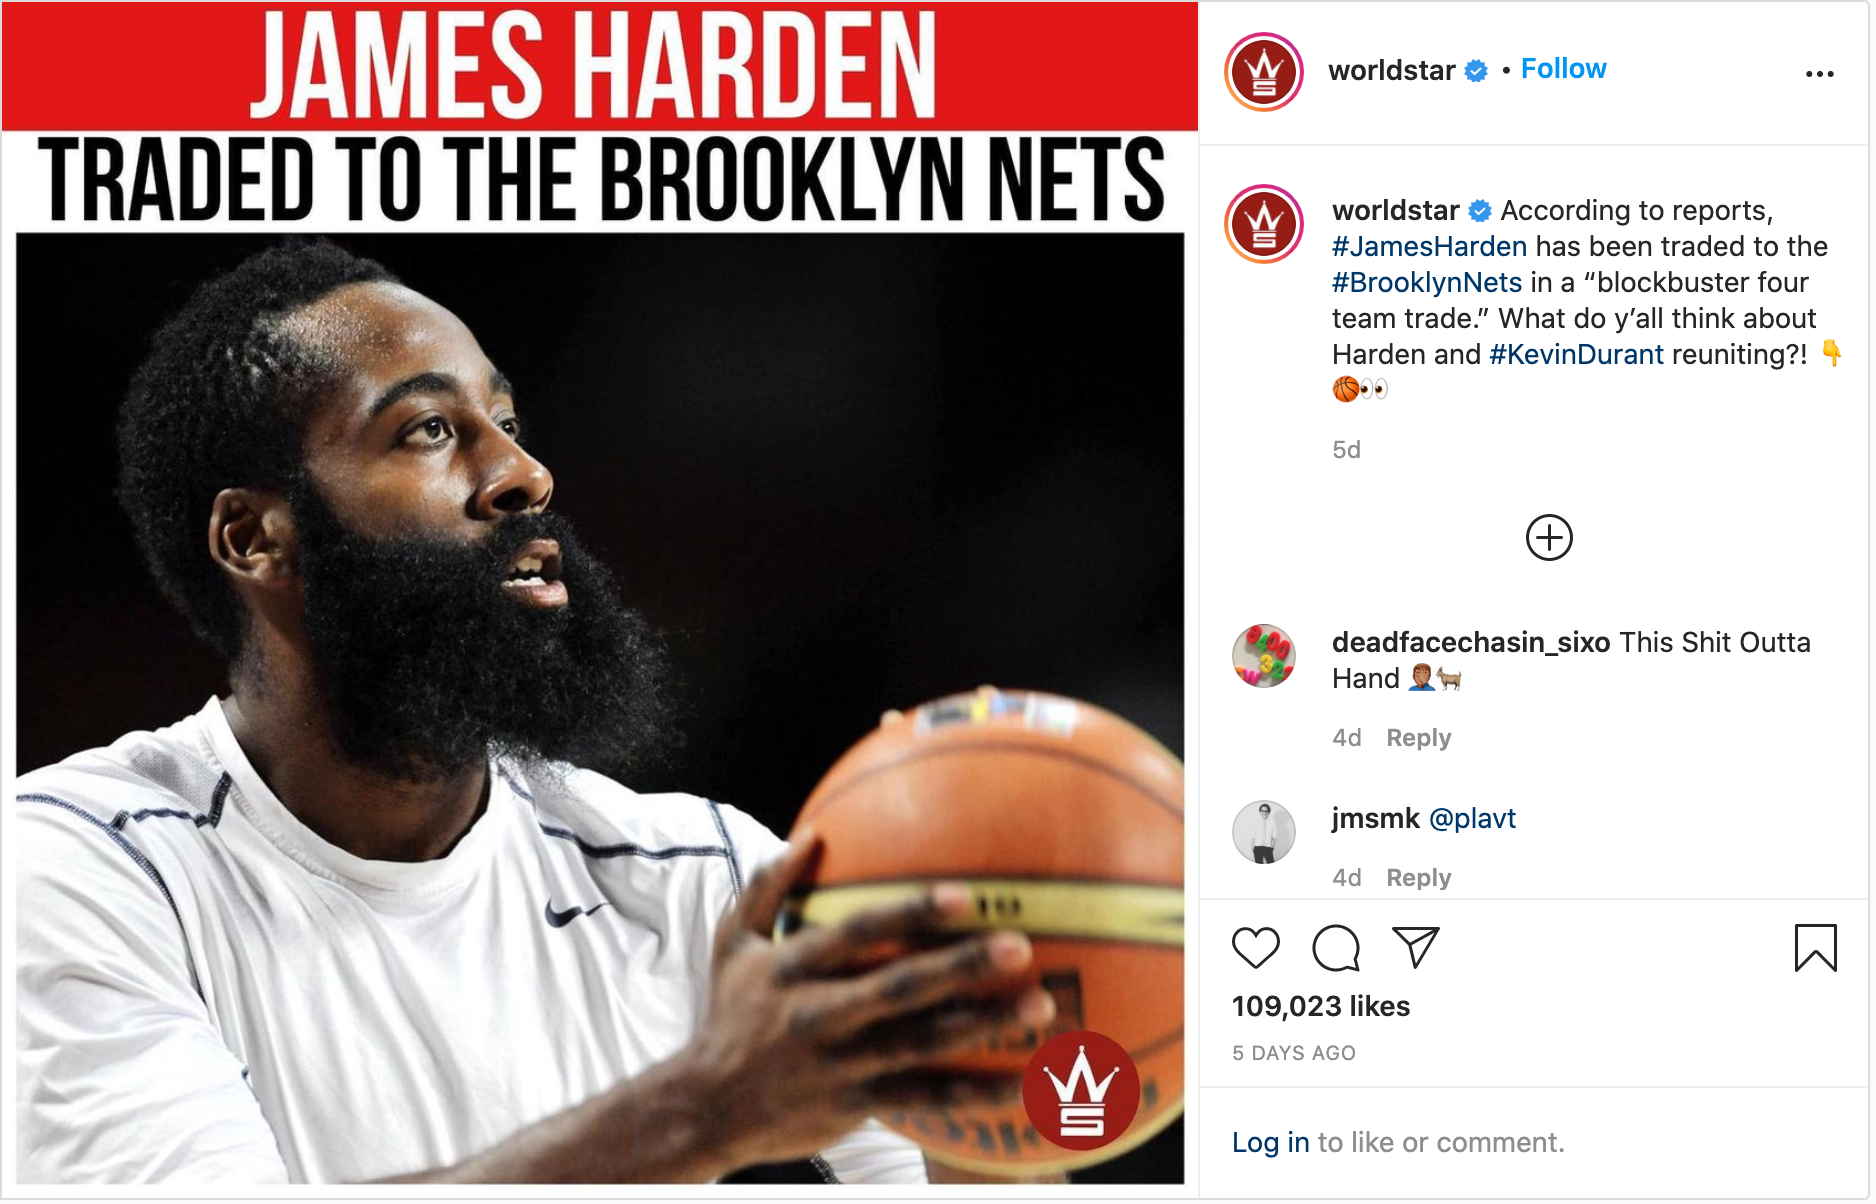 brooklyn-nets-insta-post-2